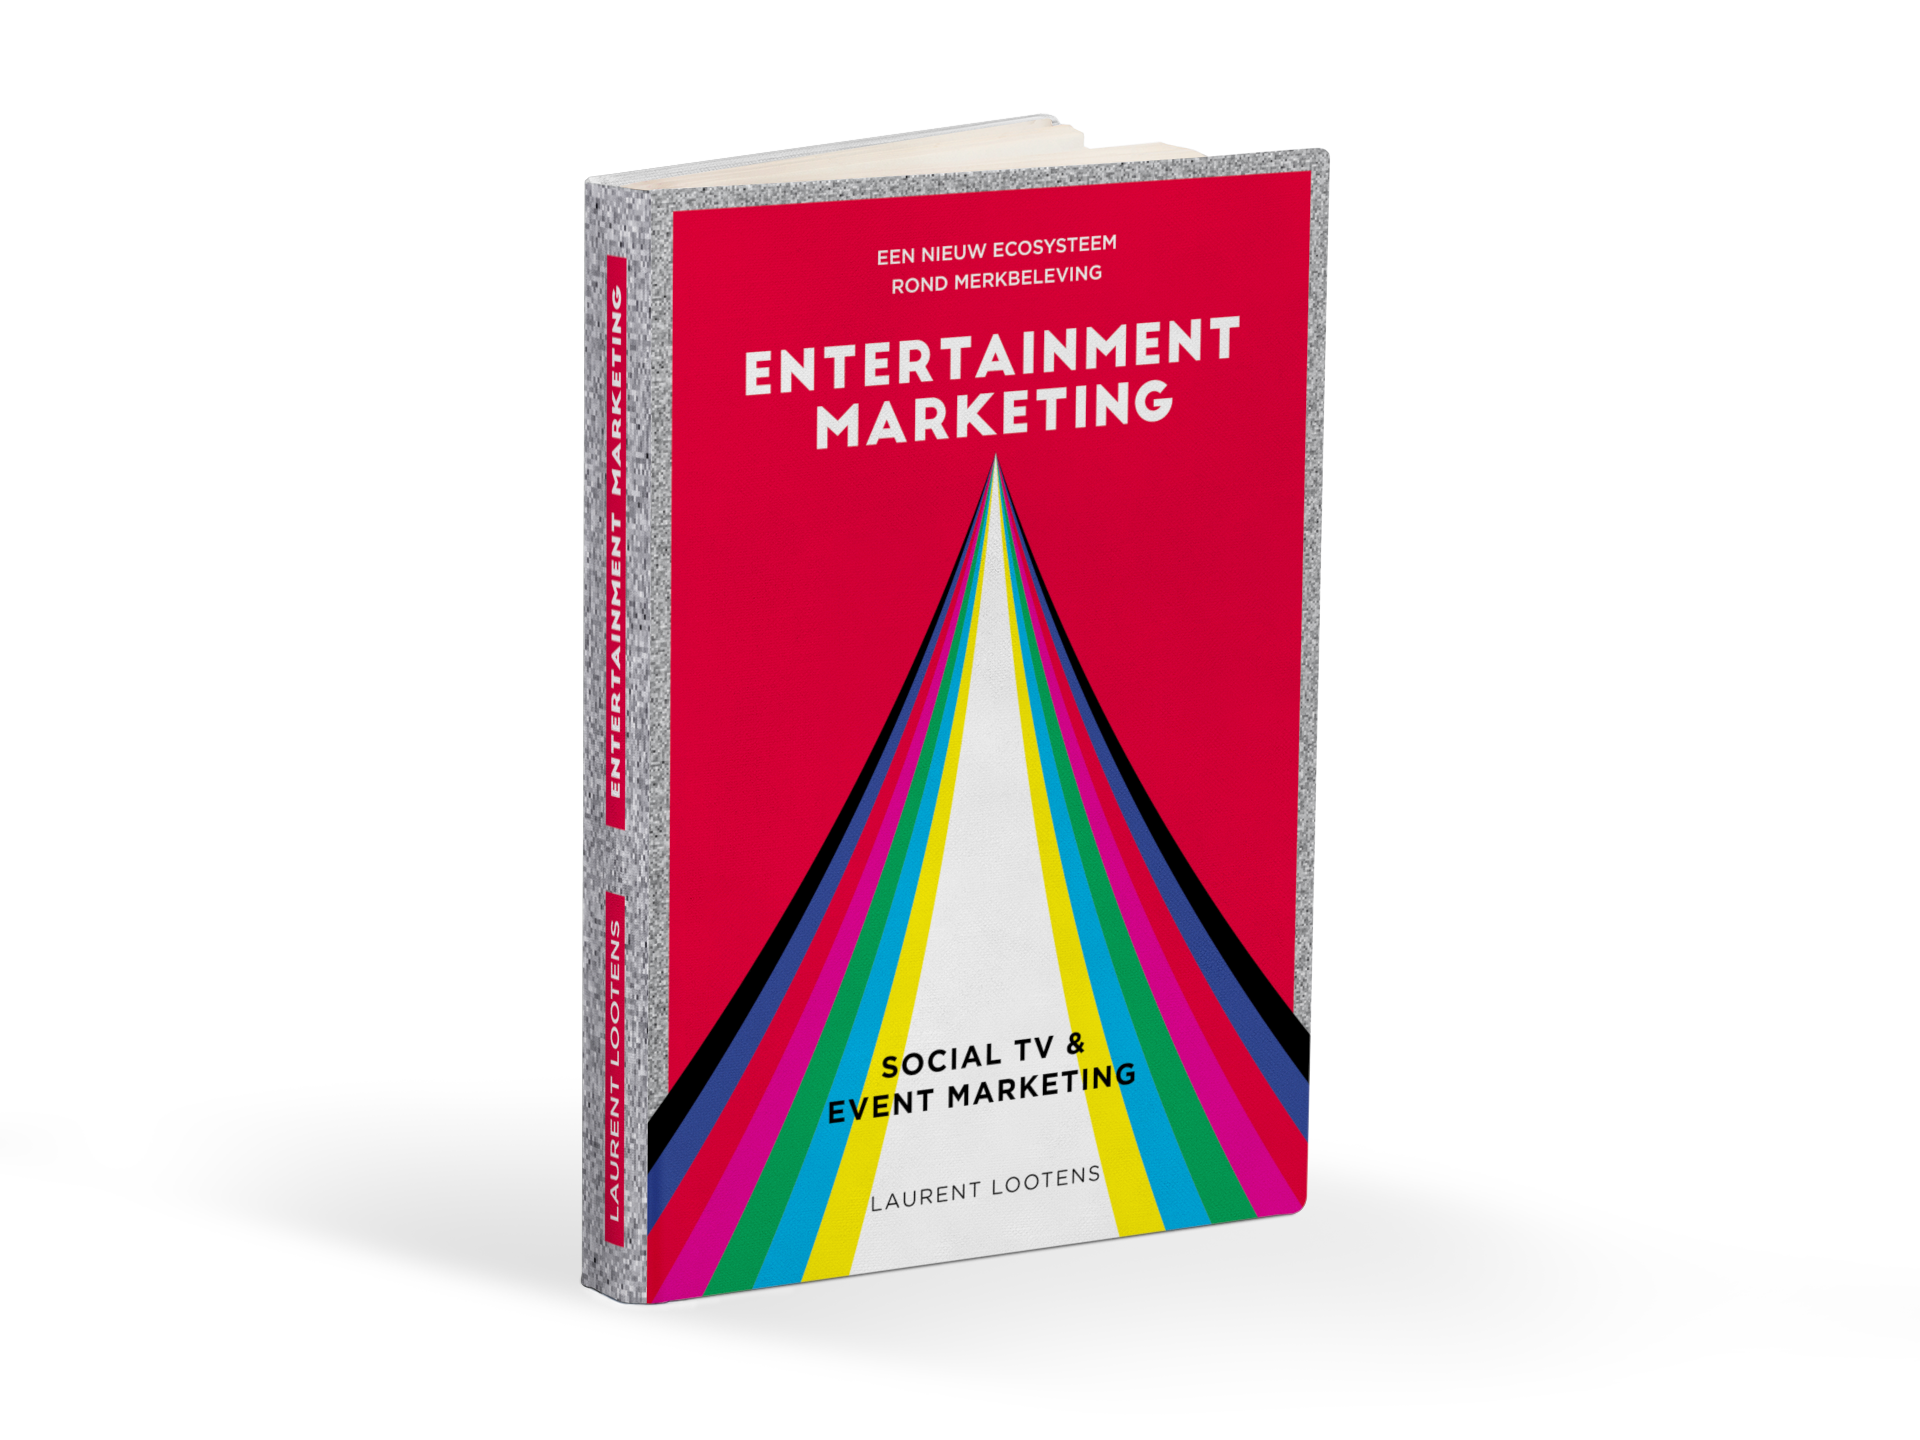 Book: Entertainment Marketing by Laurent Lootens